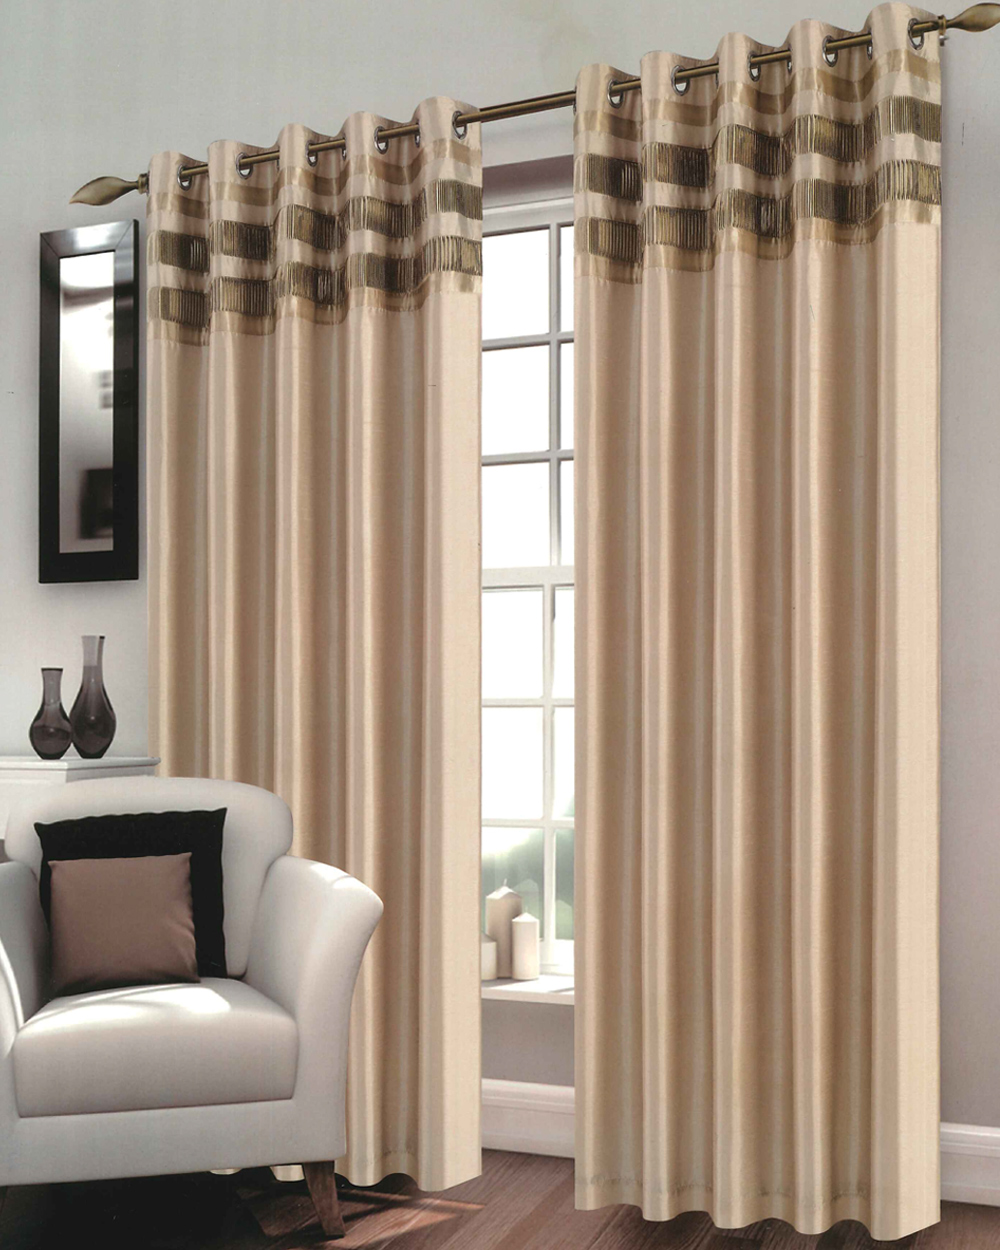 eyelet curtains expand RSQTWOX